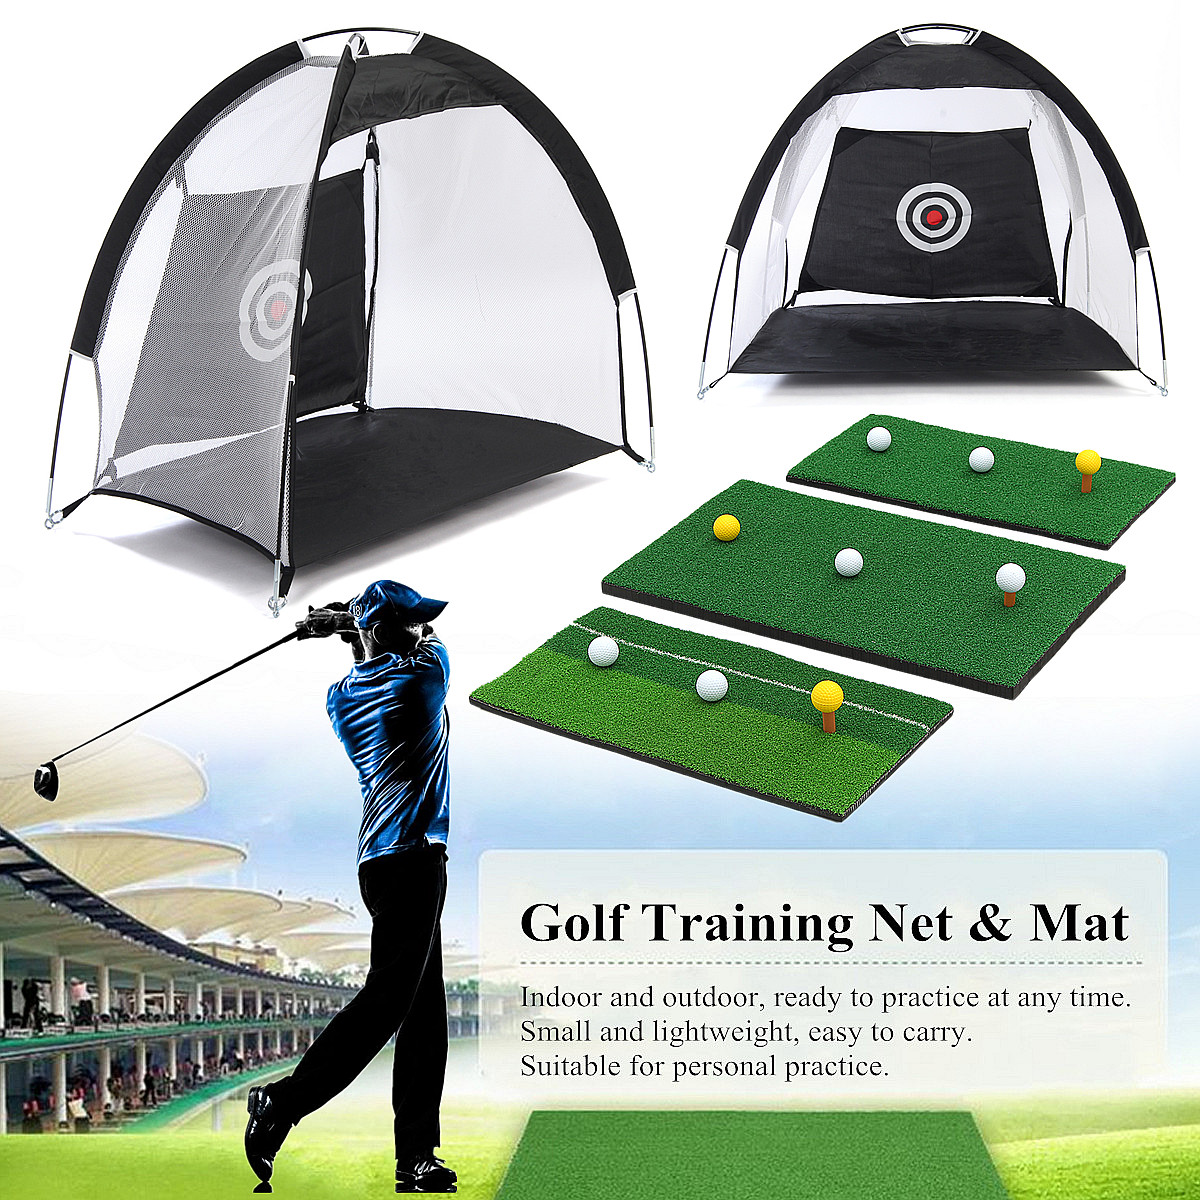 3m/1m Foldable Golf Hitting Cage Practice Net Trainer Black 210D Encryption Oxford Cloth+Polyester Durable Sturdy Construction